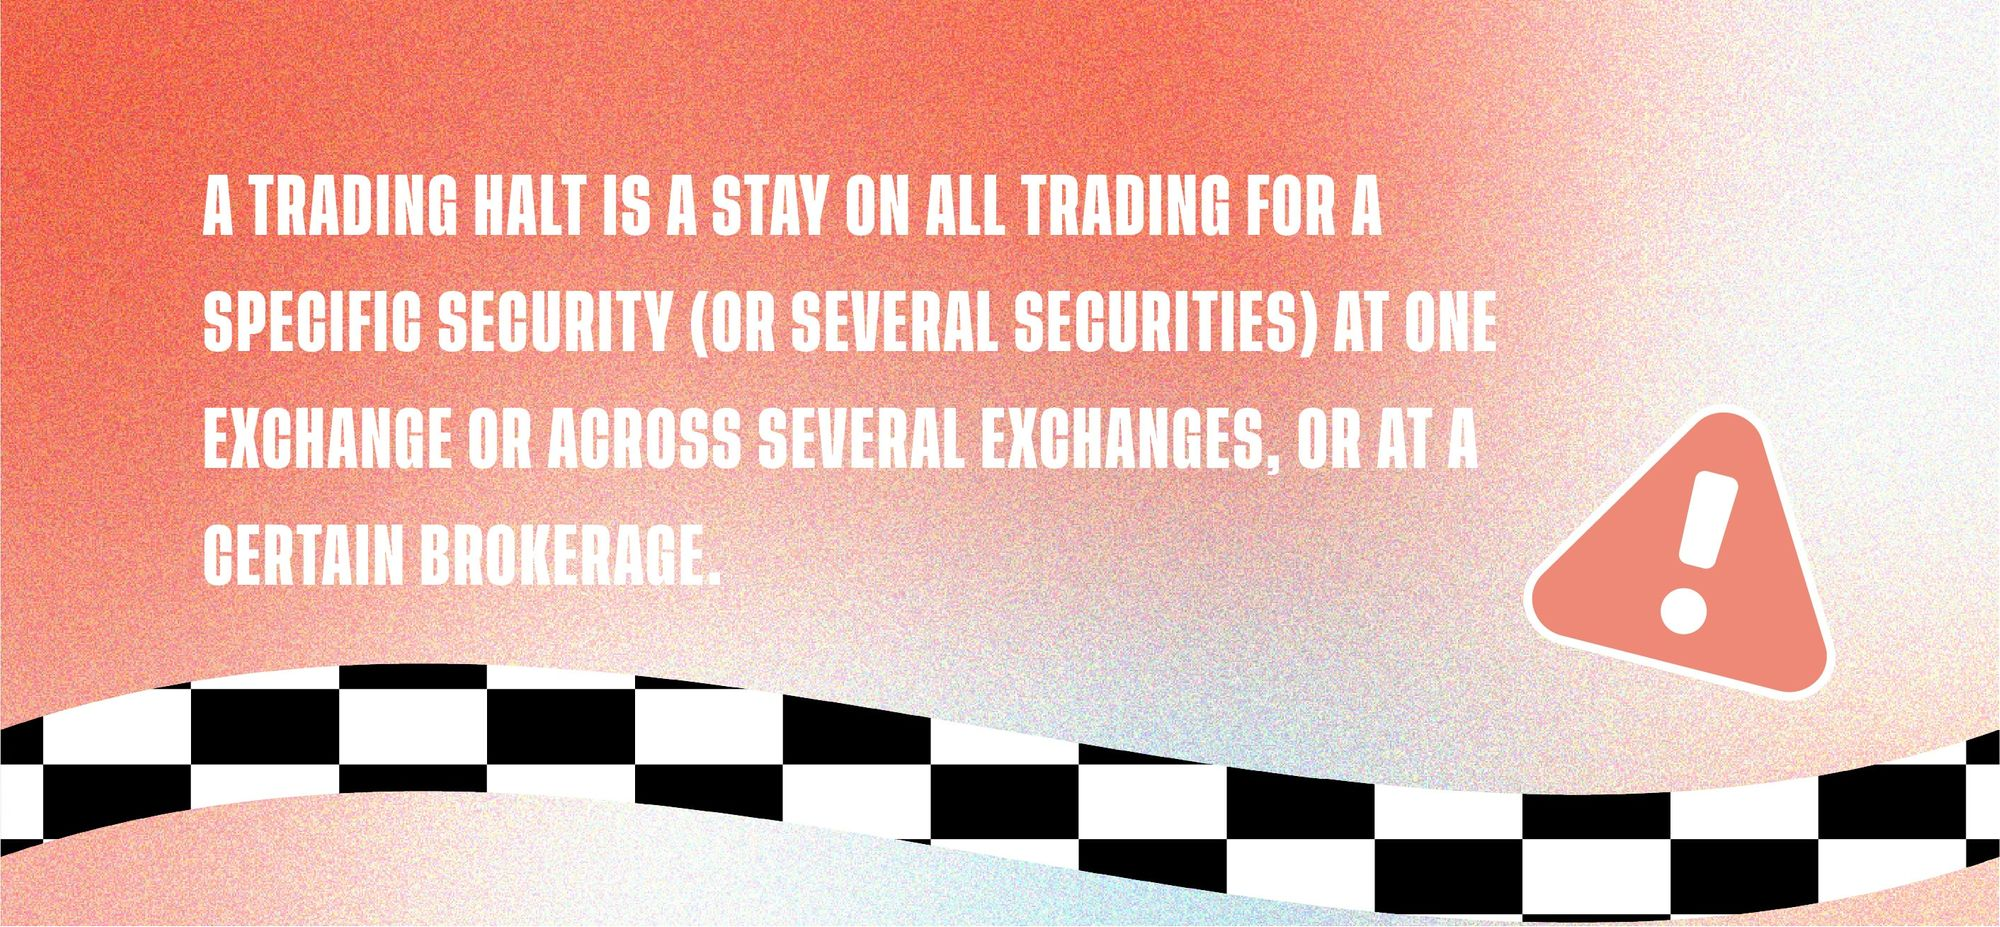 A trading halt is a stay on all trading for a specific security (or several securities) at one exchange or across several exchanges, or at a certain brokerage.